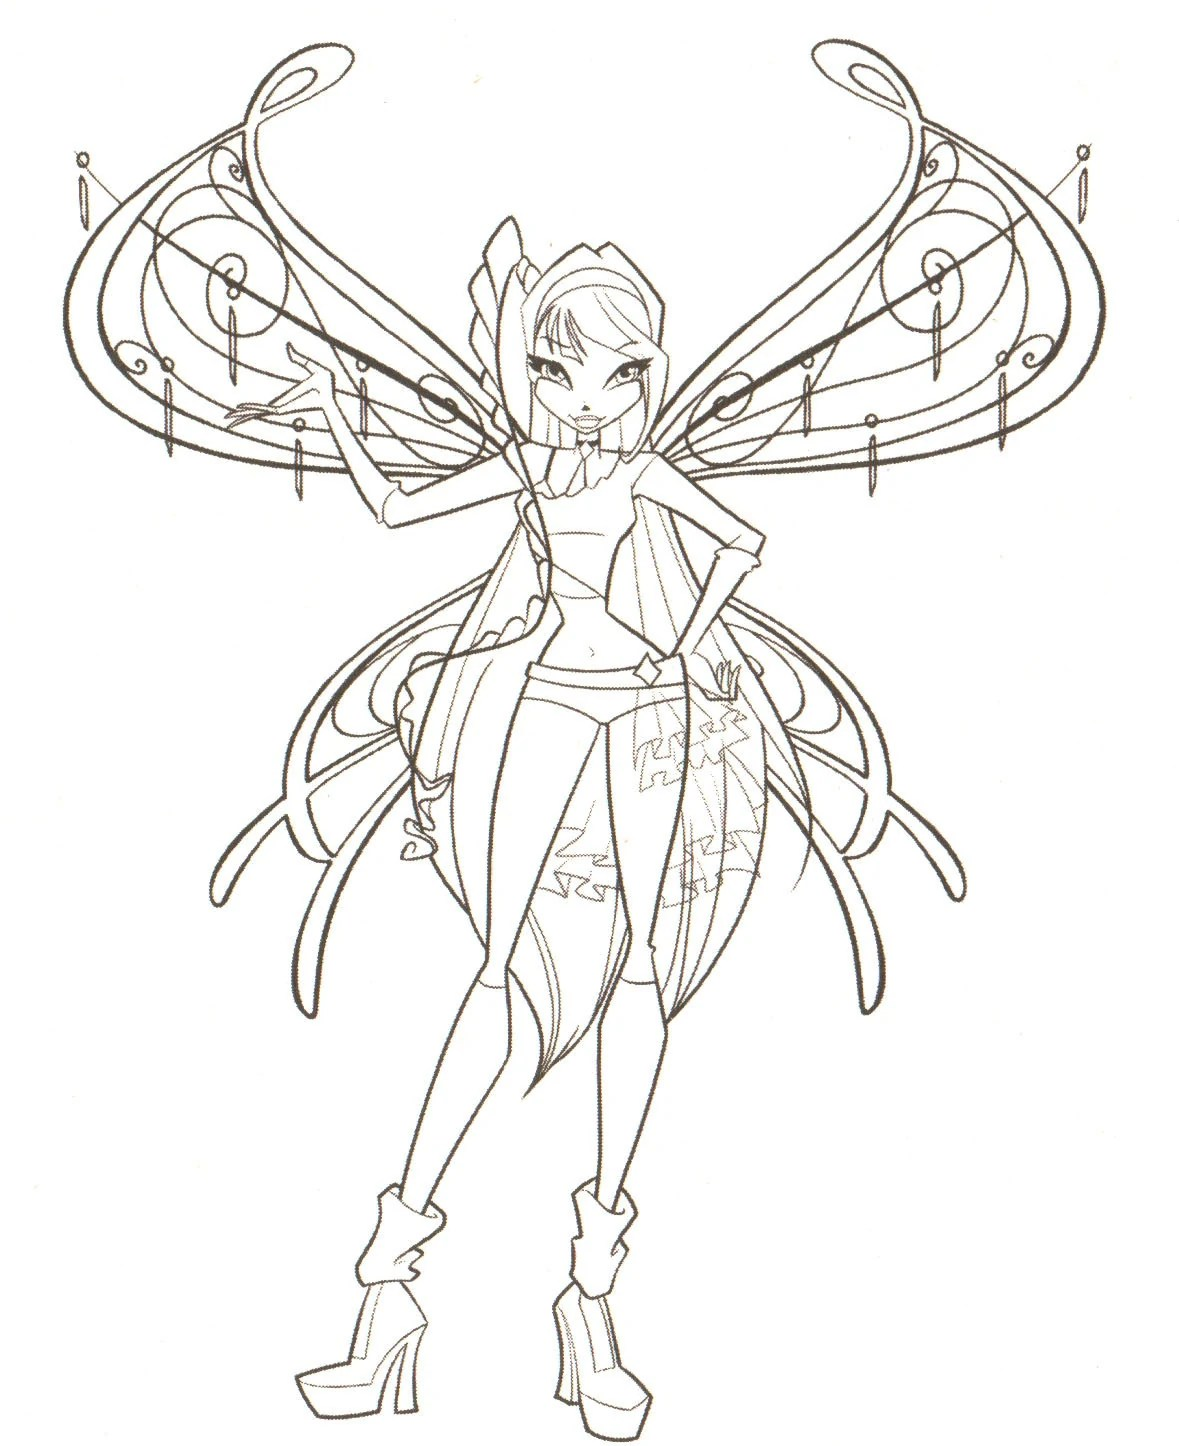 Image Coloring Pages The Winx Club 18341776 1179 1446 Winx